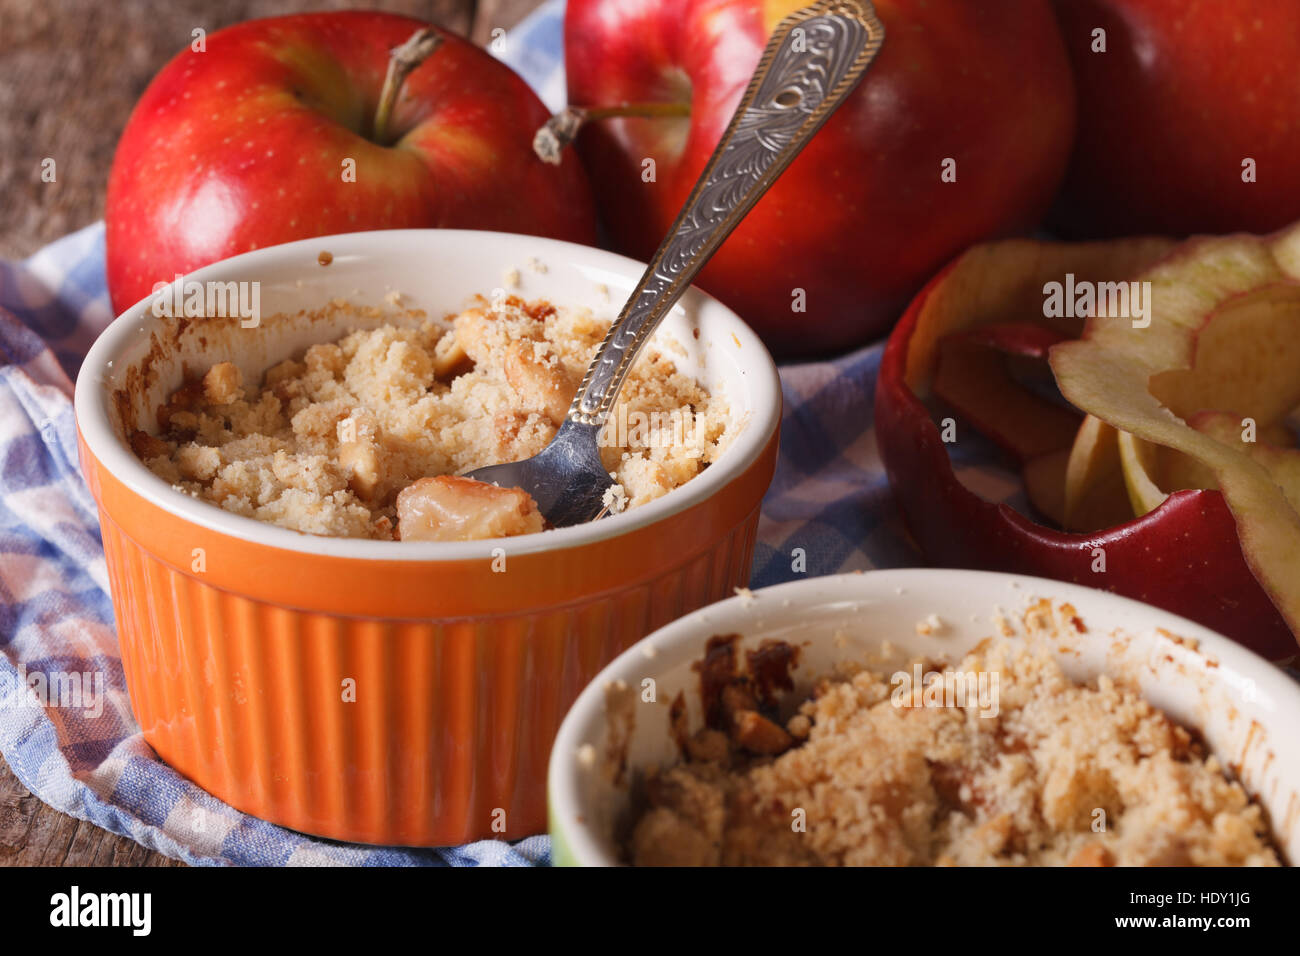 English crumble with apples close-up in the pot. Horizontal rustic style - Stock Image